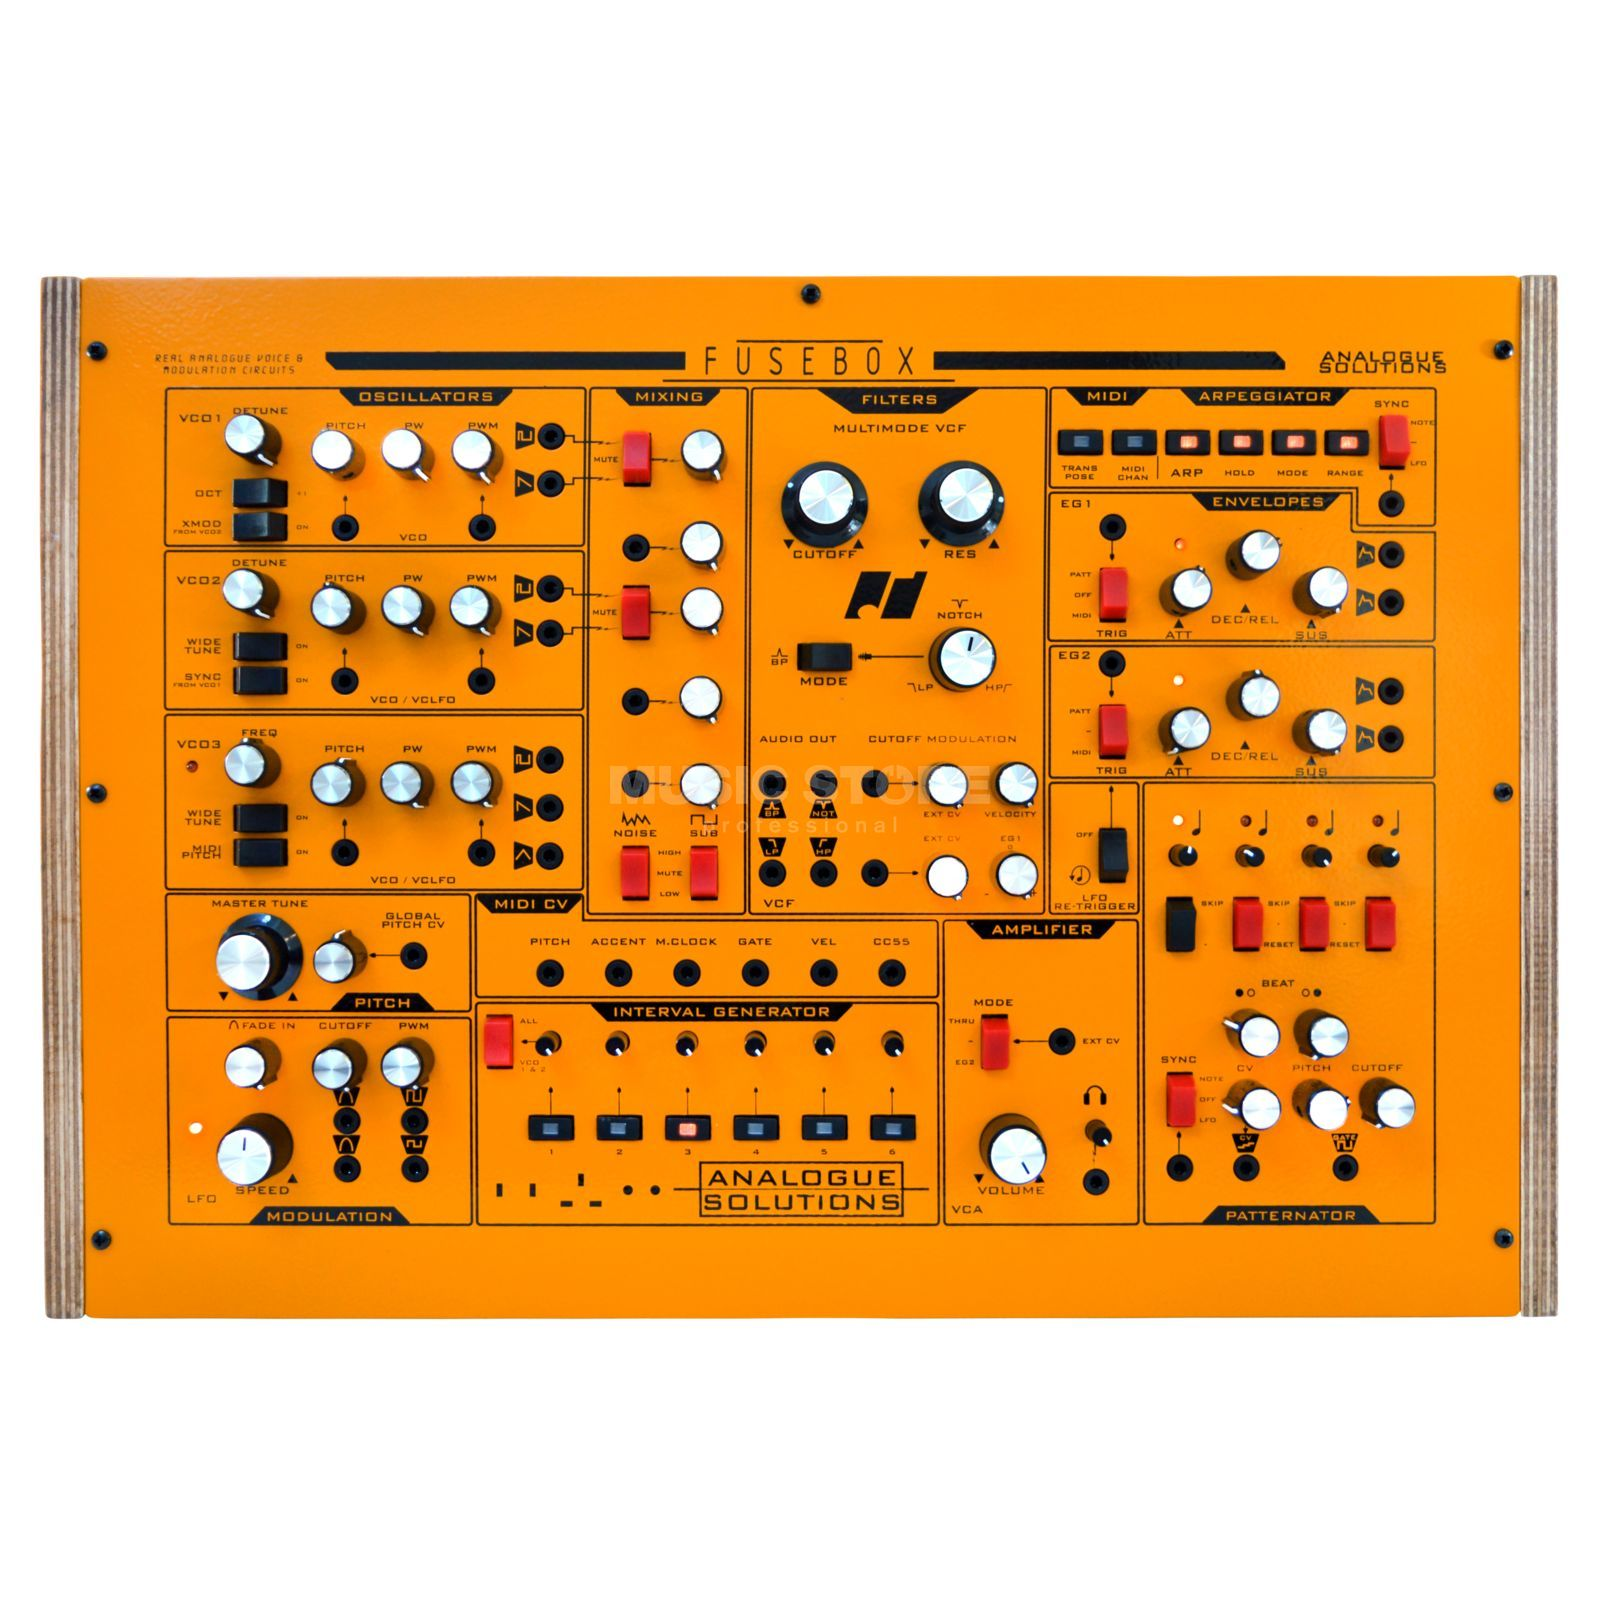 Analogue Solutions Fusebox Sub Fuse Box